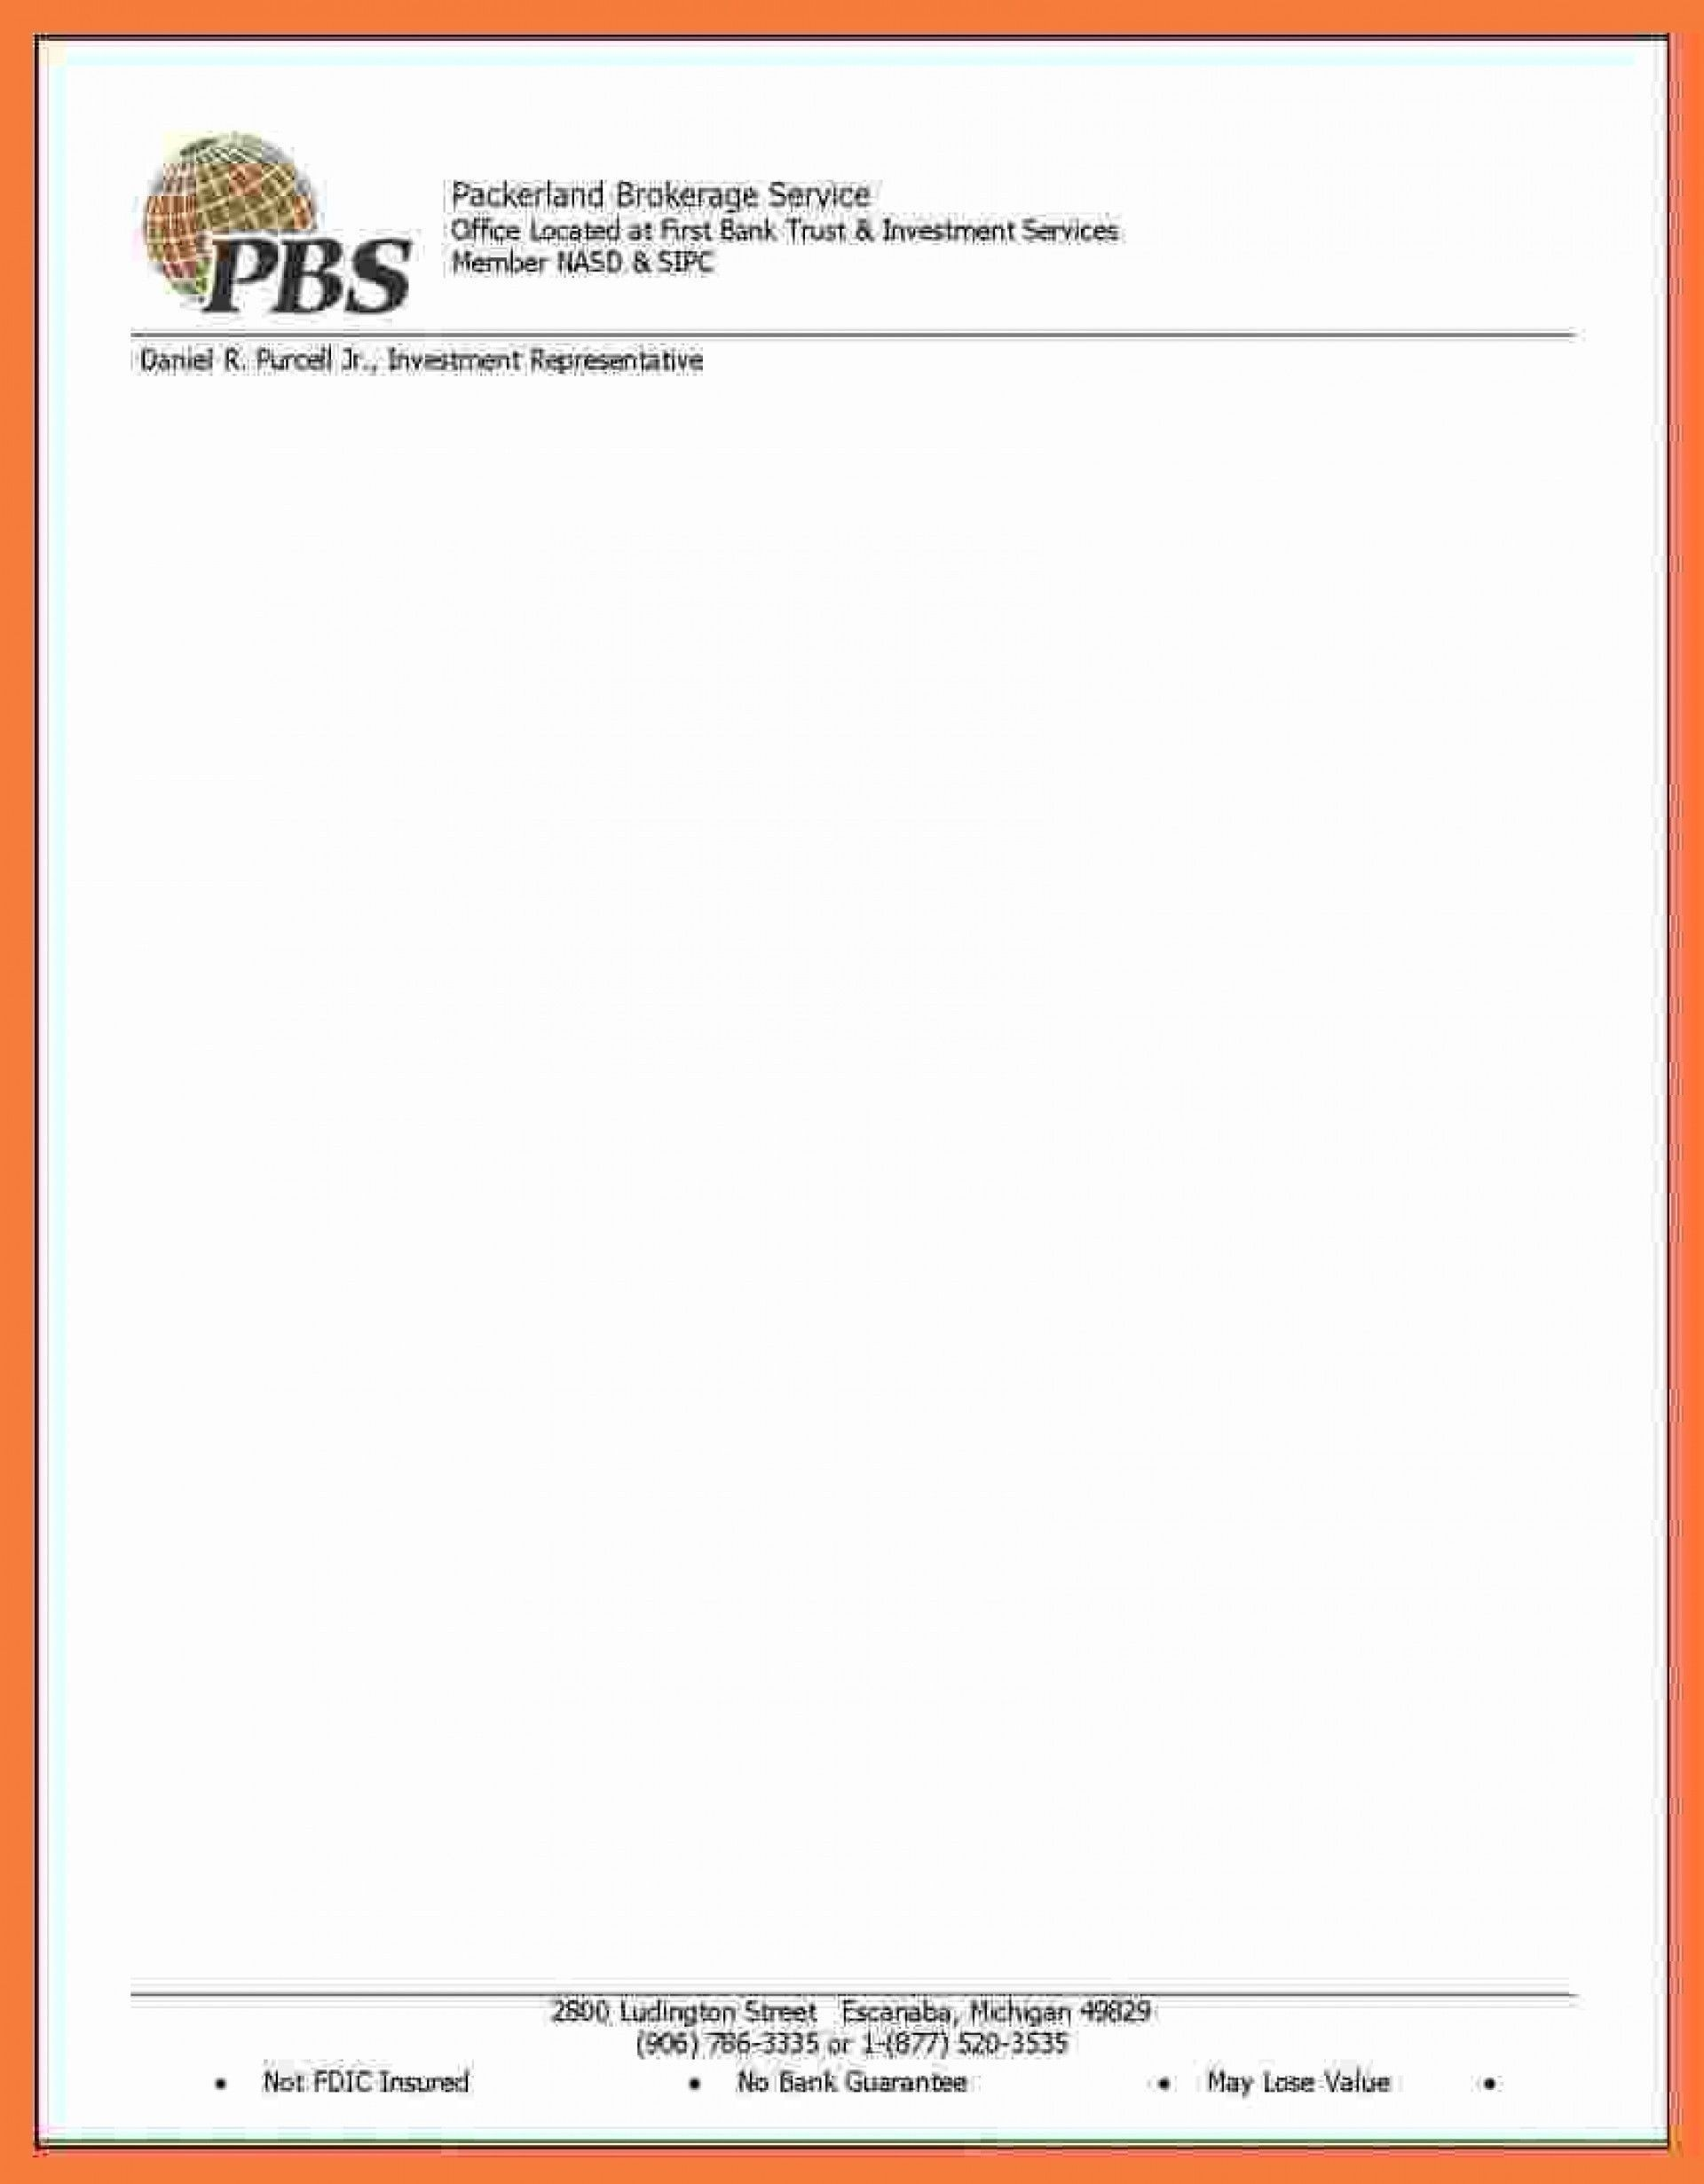 001 Remarkable Letterhead Sample Free Download Inspiration  Construction Company Template1920